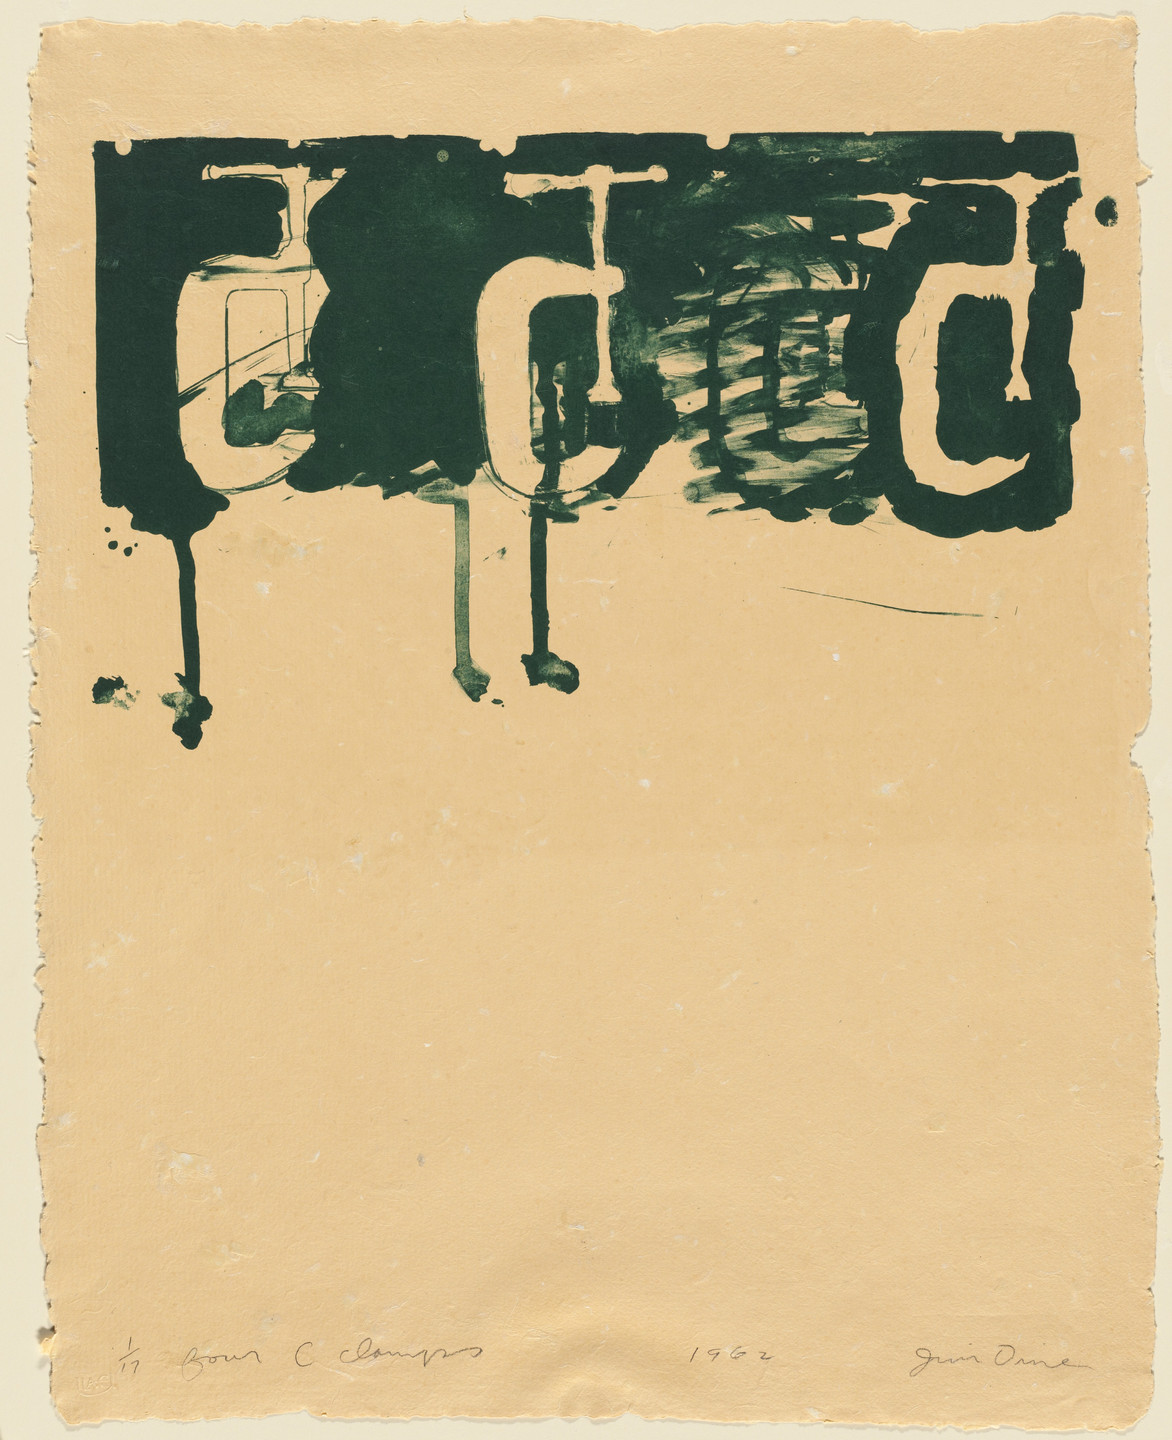 Jim Dine. Four C Clamps. 1962